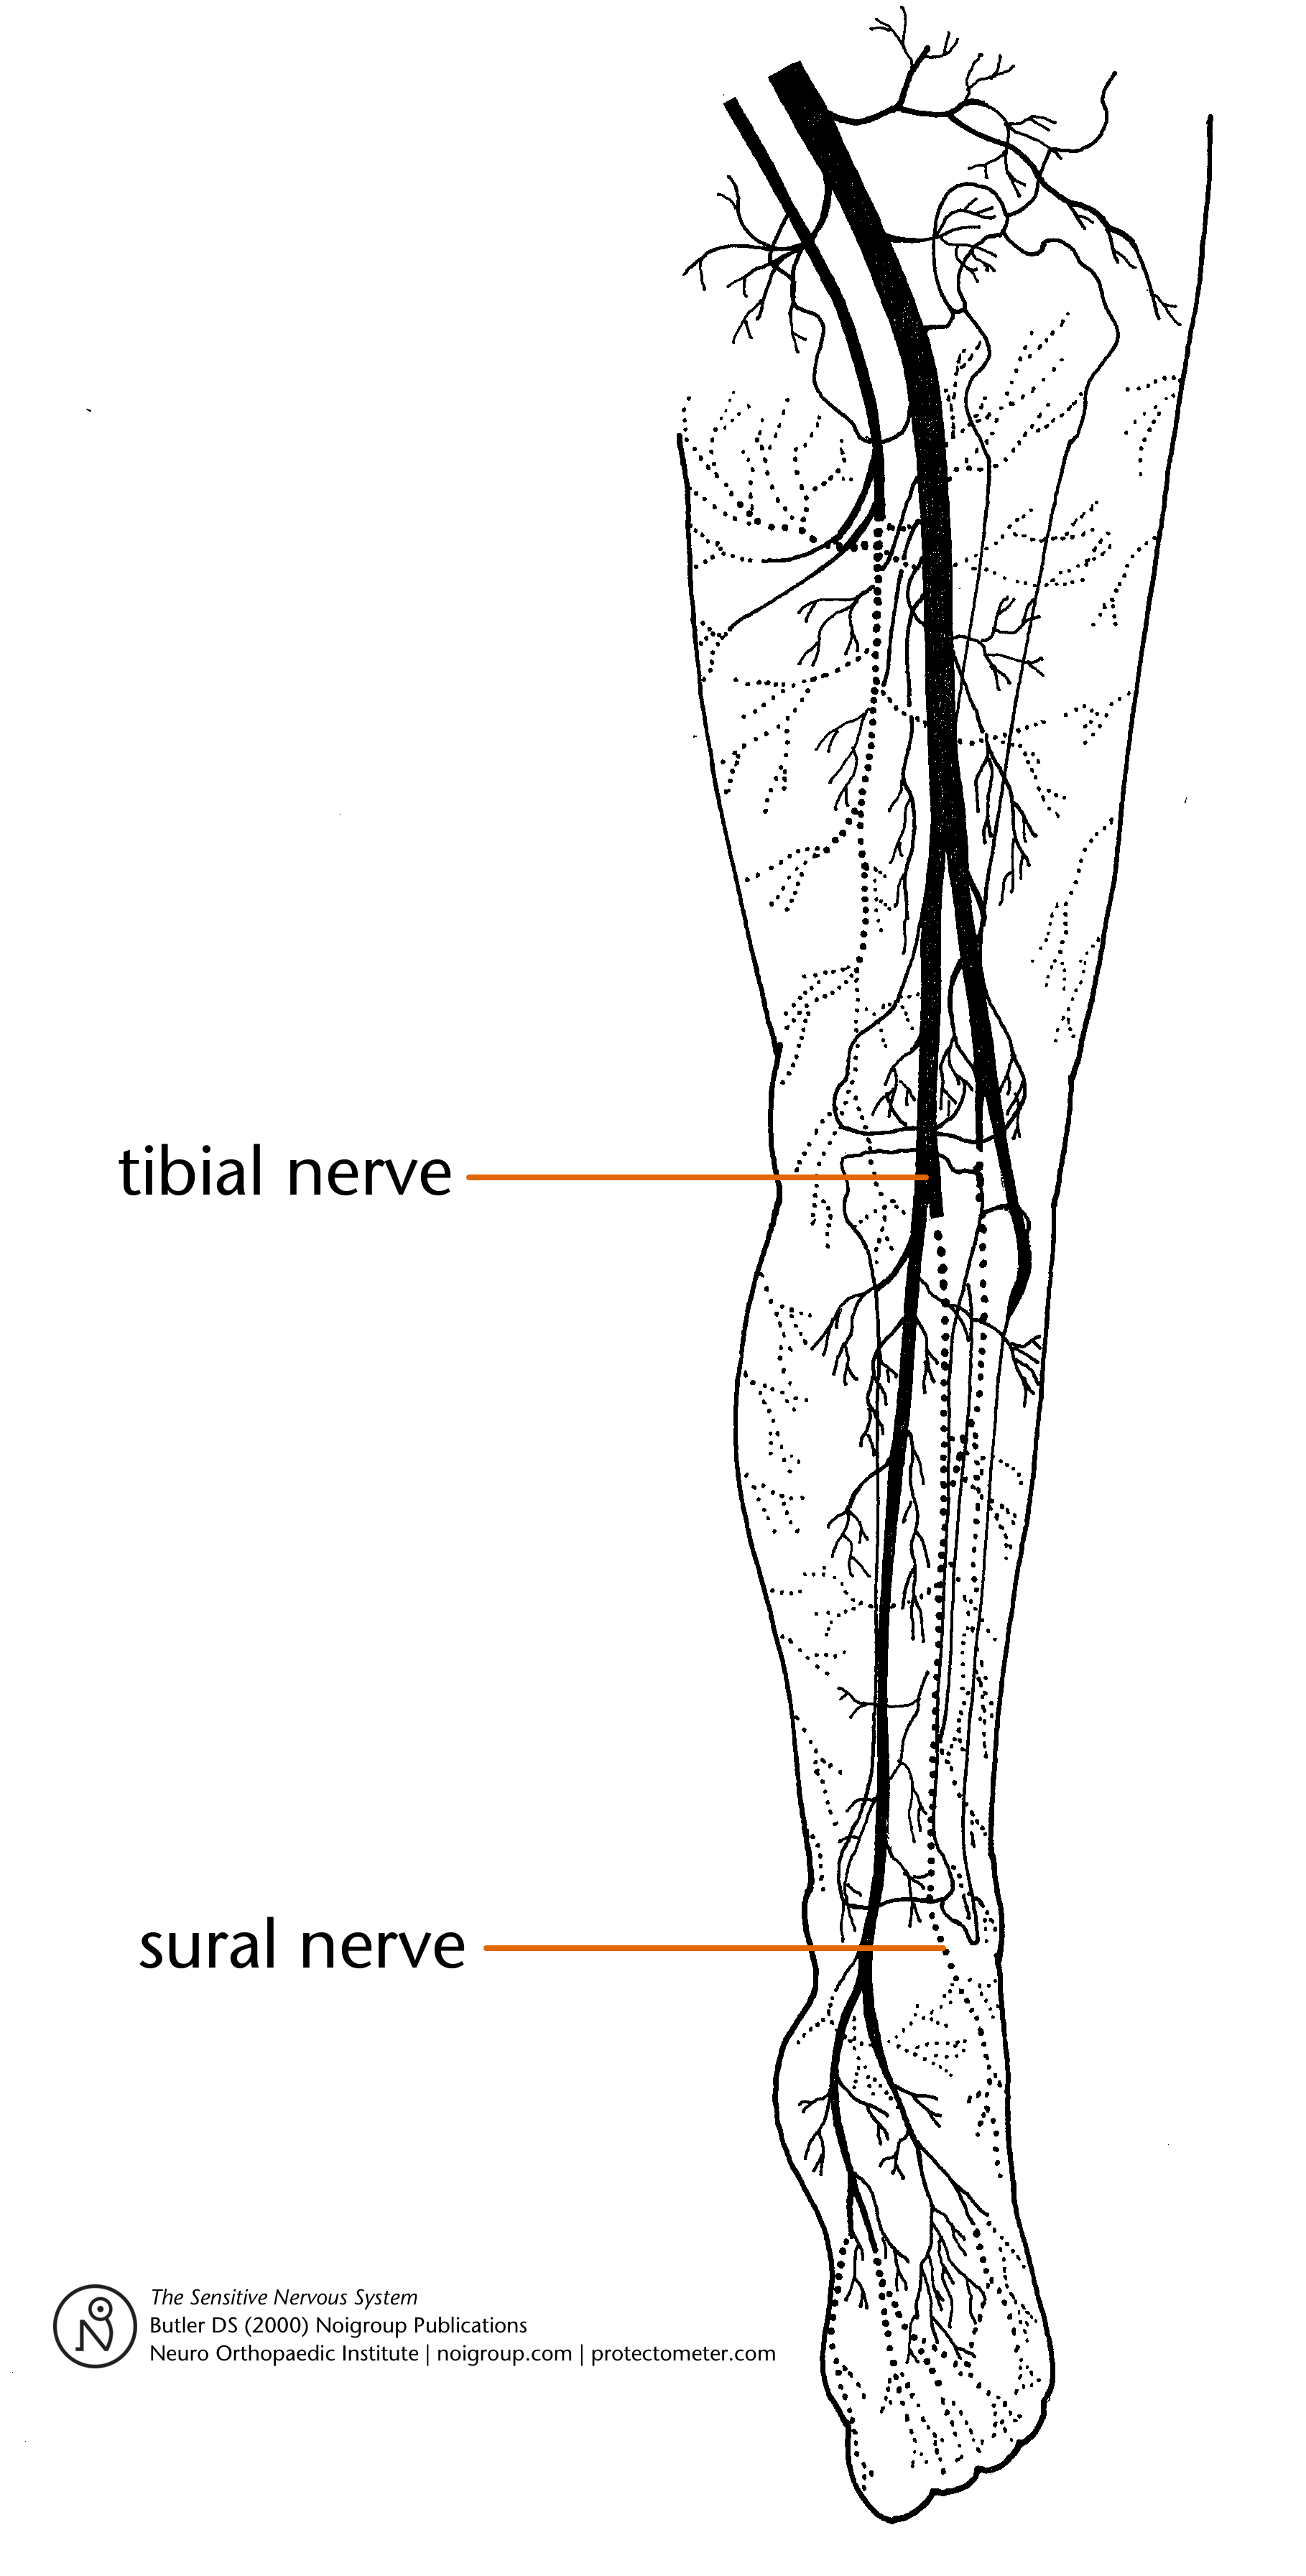 The Sural Nerve The Appendix Of The Nervous System